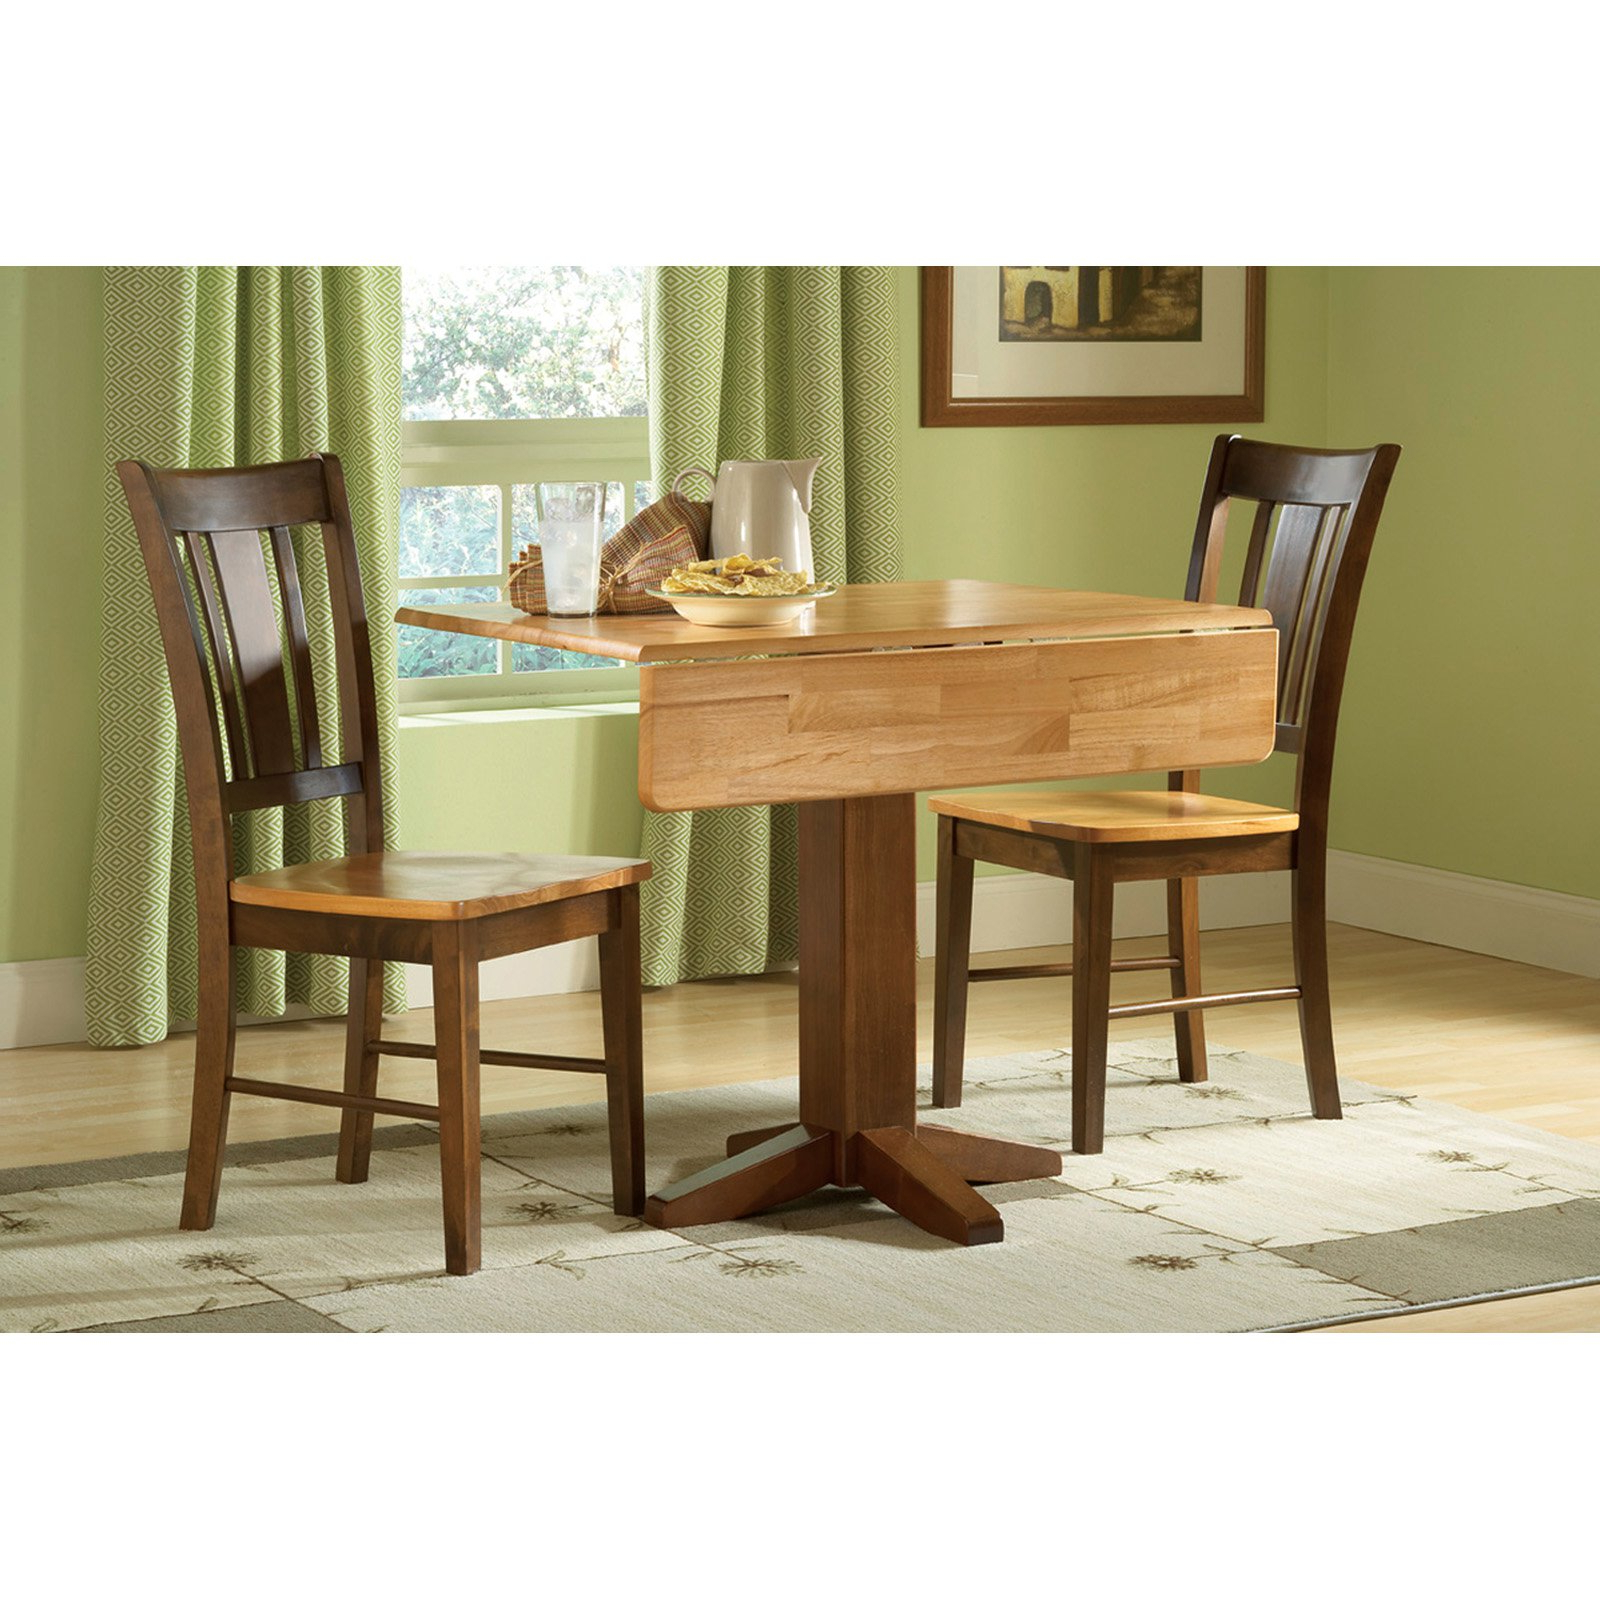 Most Recently Released 3 Pieces Dining Tables And Chair Set Intended For International Concepts Square Dual Drop Leaf 3 Piece Dining (View 26 of 30)